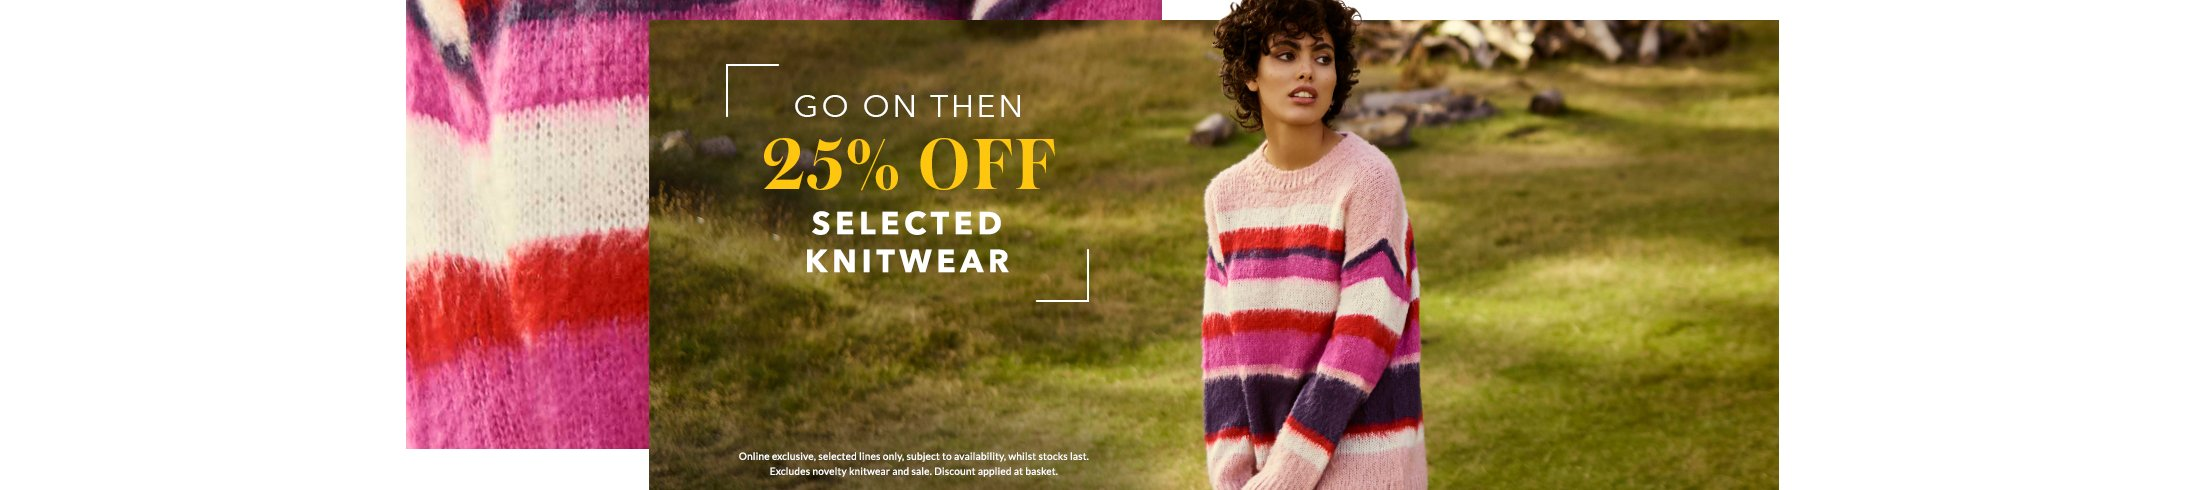 Shop women's knitwear sale